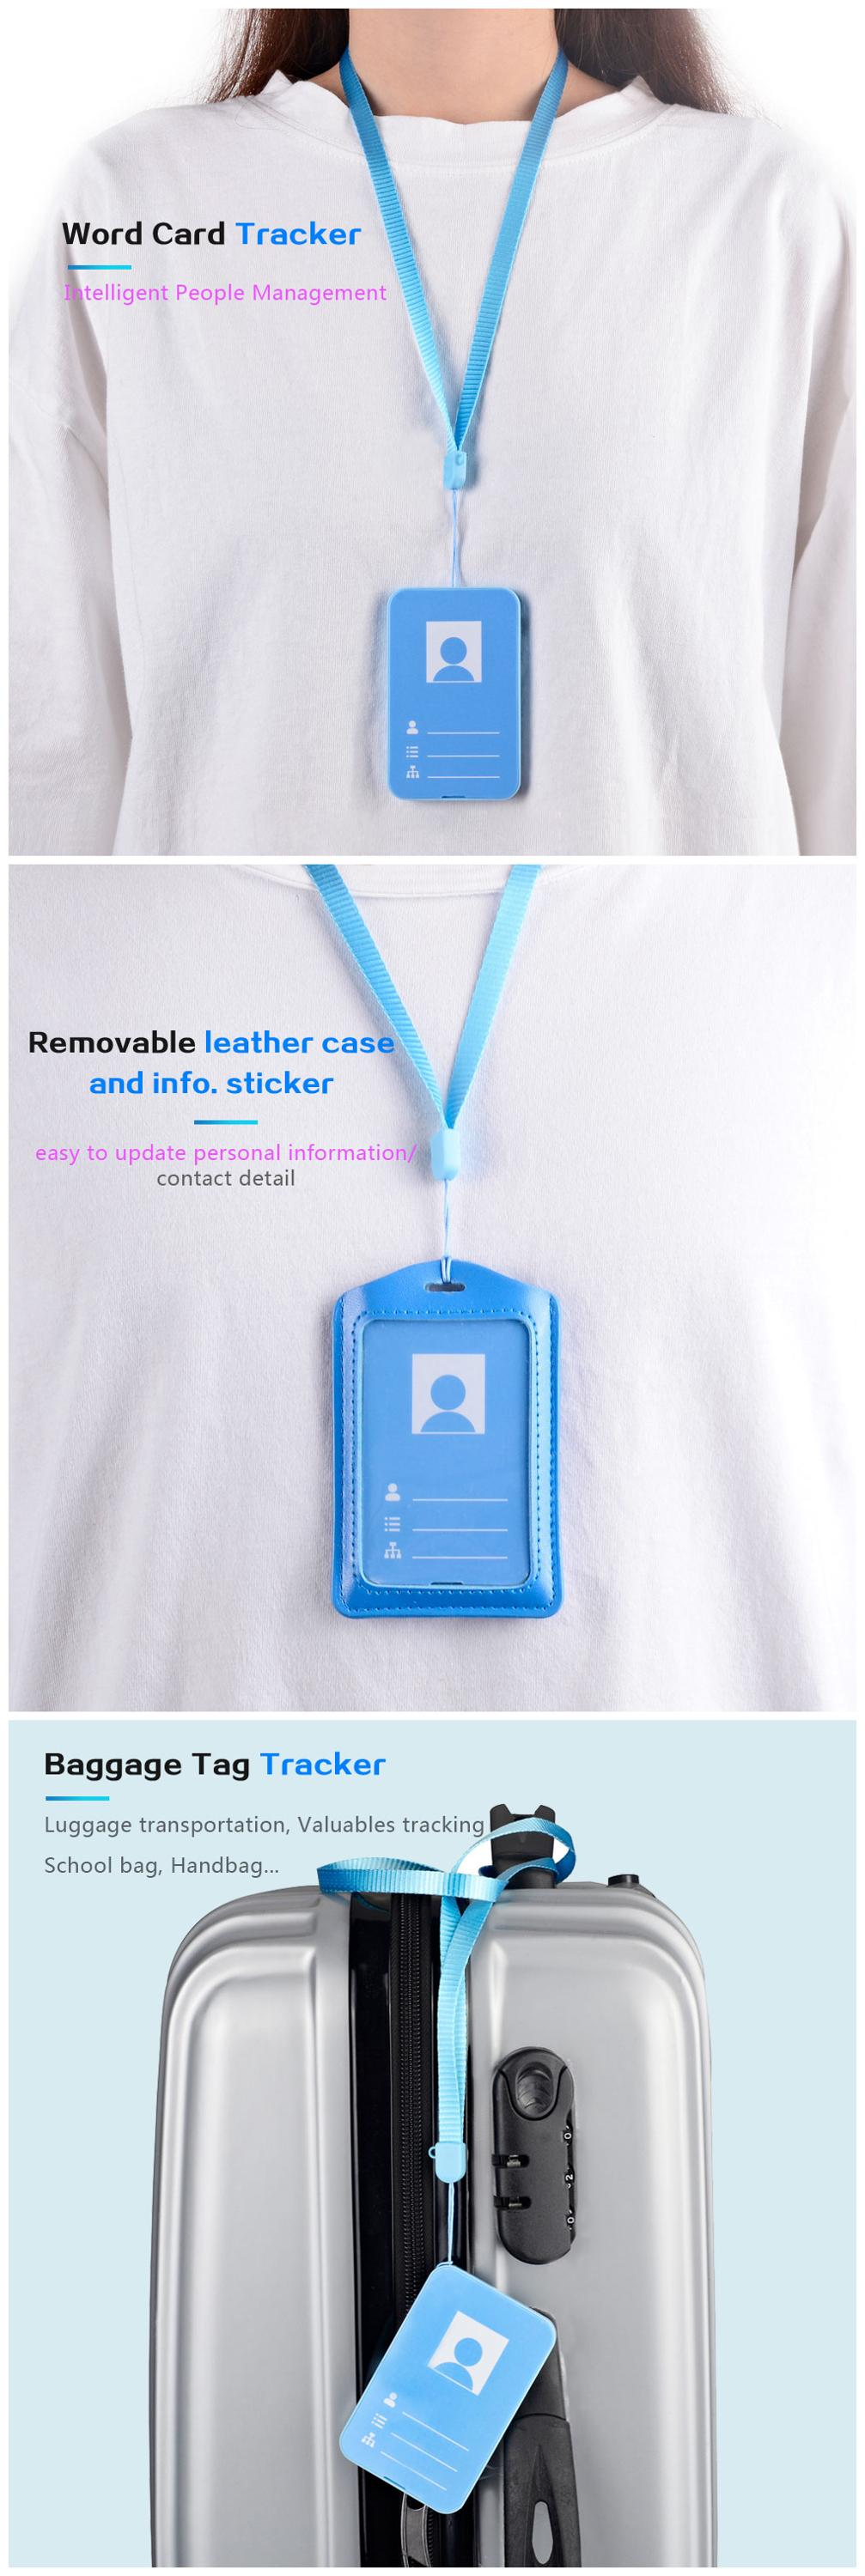 Person Safety Student Card Hidden GPS Tracker 1500mhA ID Card GPS Tracker